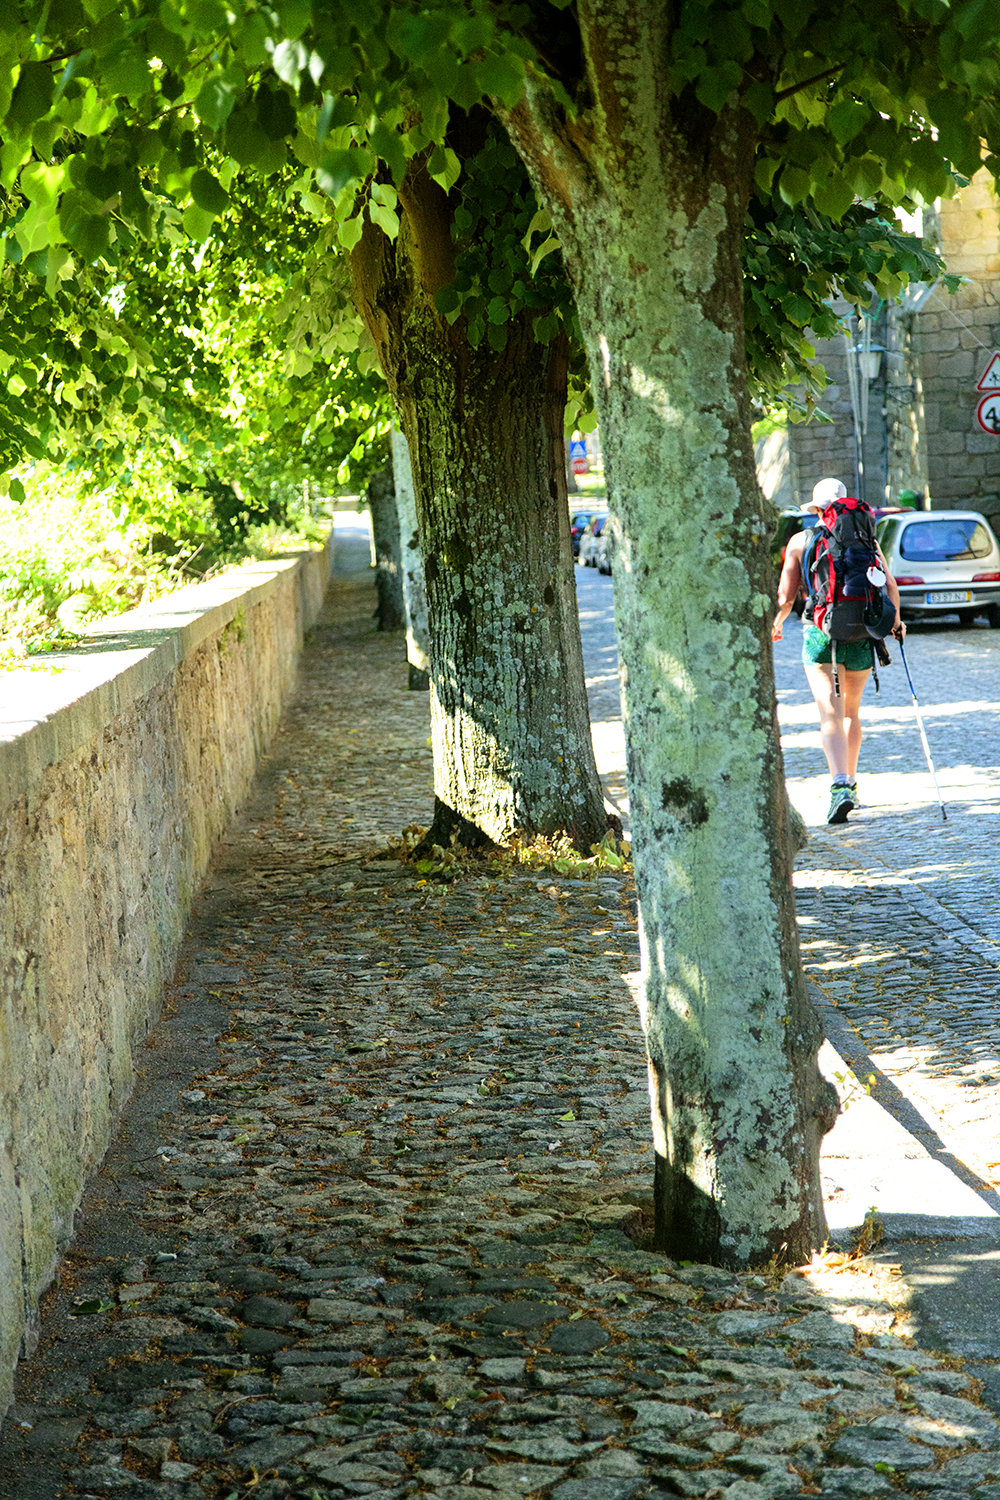 Mood Swings, Puffy Feet and Cobblestones - Image 6